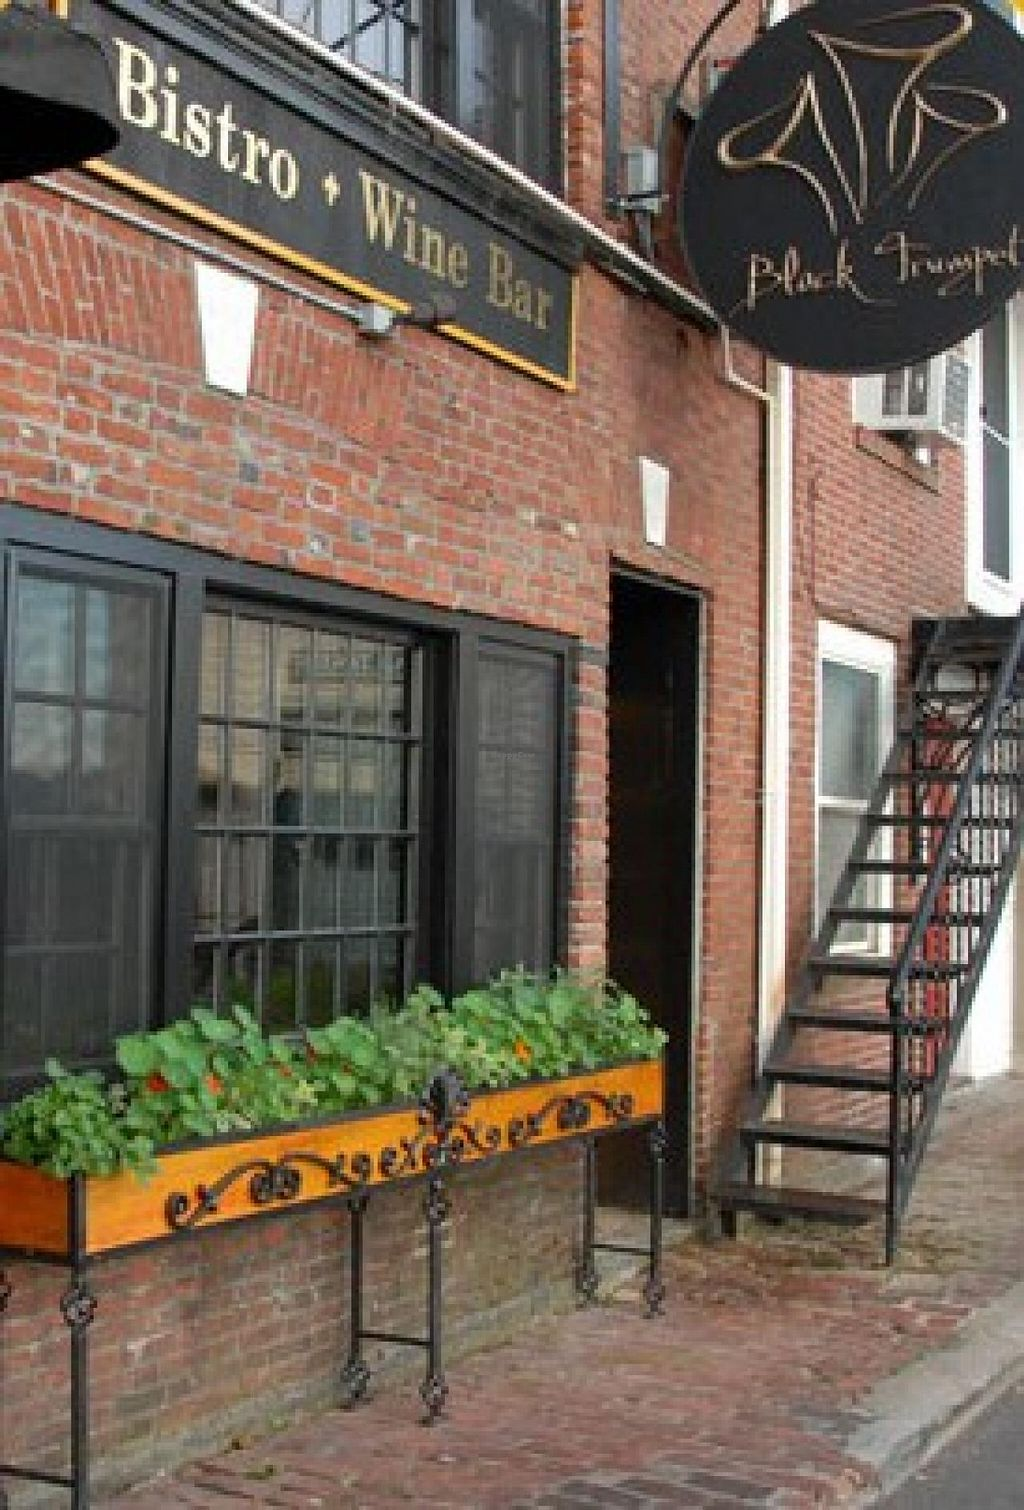 """Photo of Black Trumpet Bistro  by <a href=""""/members/profile/community"""">community</a> <br/>Black Trumpet Bistro <br/> September 10, 2014  - <a href='/contact/abuse/image/51191/79556'>Report</a>"""